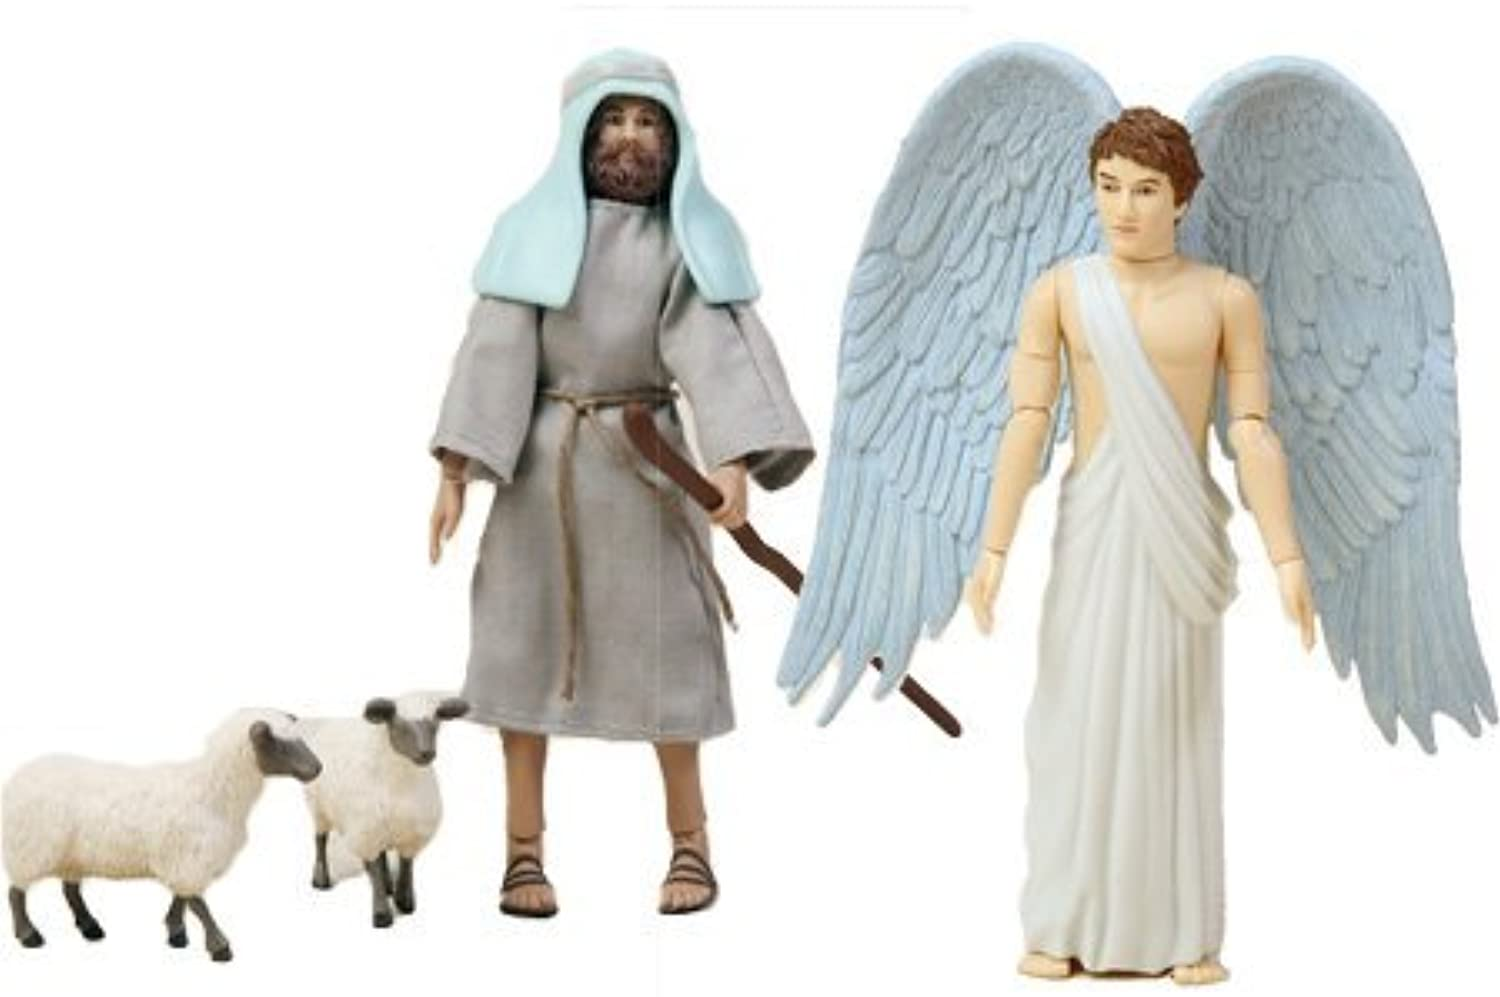 Birth of Jesus Angel and Shepherd Action Figure Set by BibleQuest